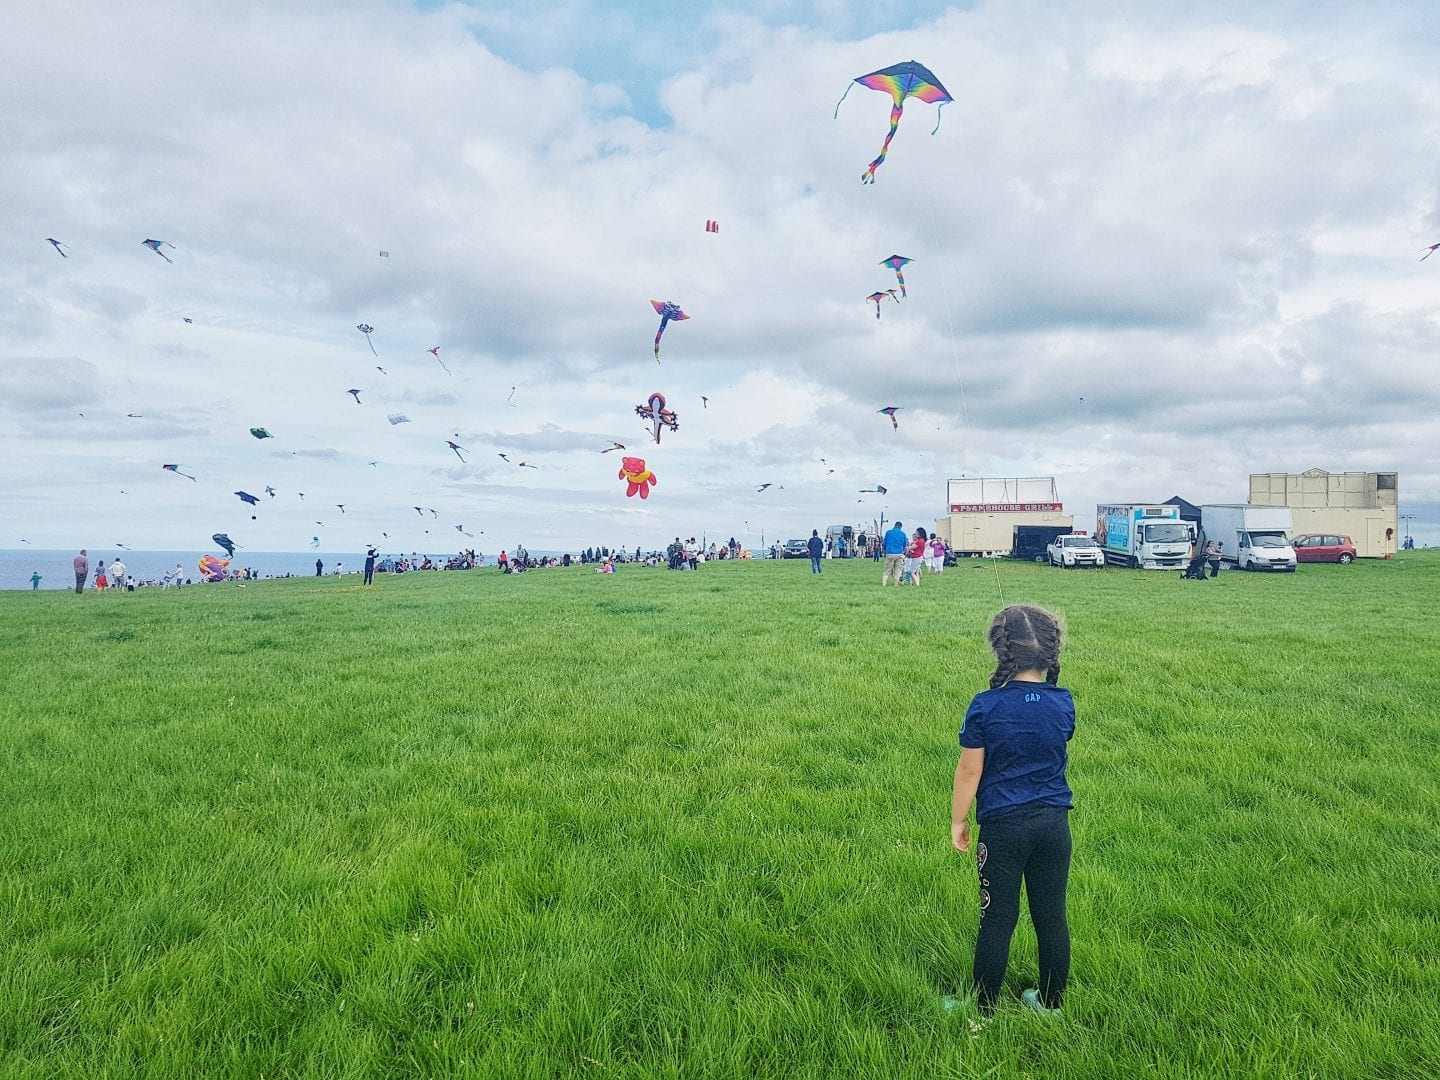 Kites & Castles – Our first Kite Festival with National Trust NI